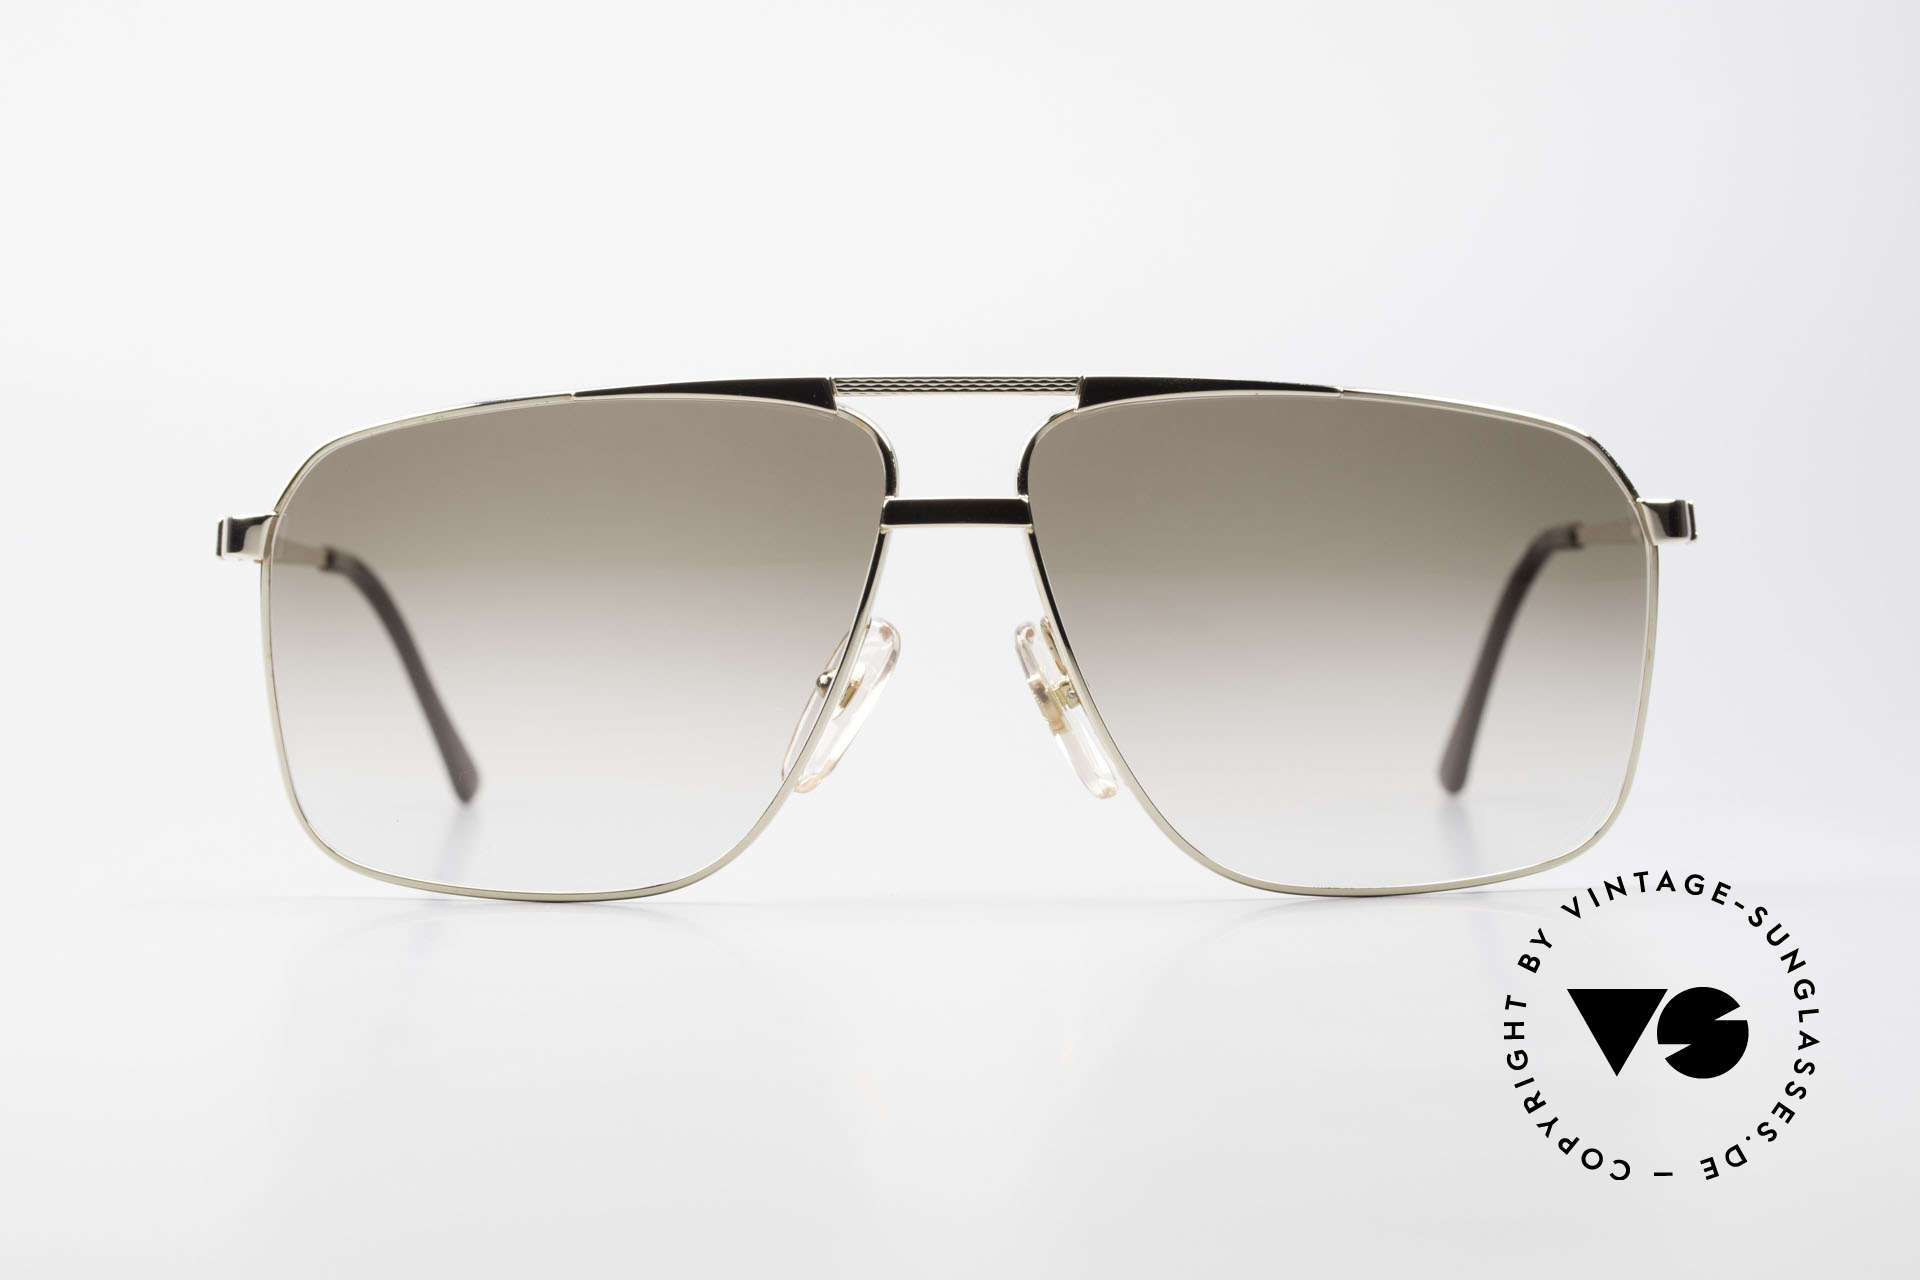 Dunhill 6126 Gold Plated 90's Sunglasses, noble DUNHILL vintage 90's sunglasses for gentlemen, Made for Men